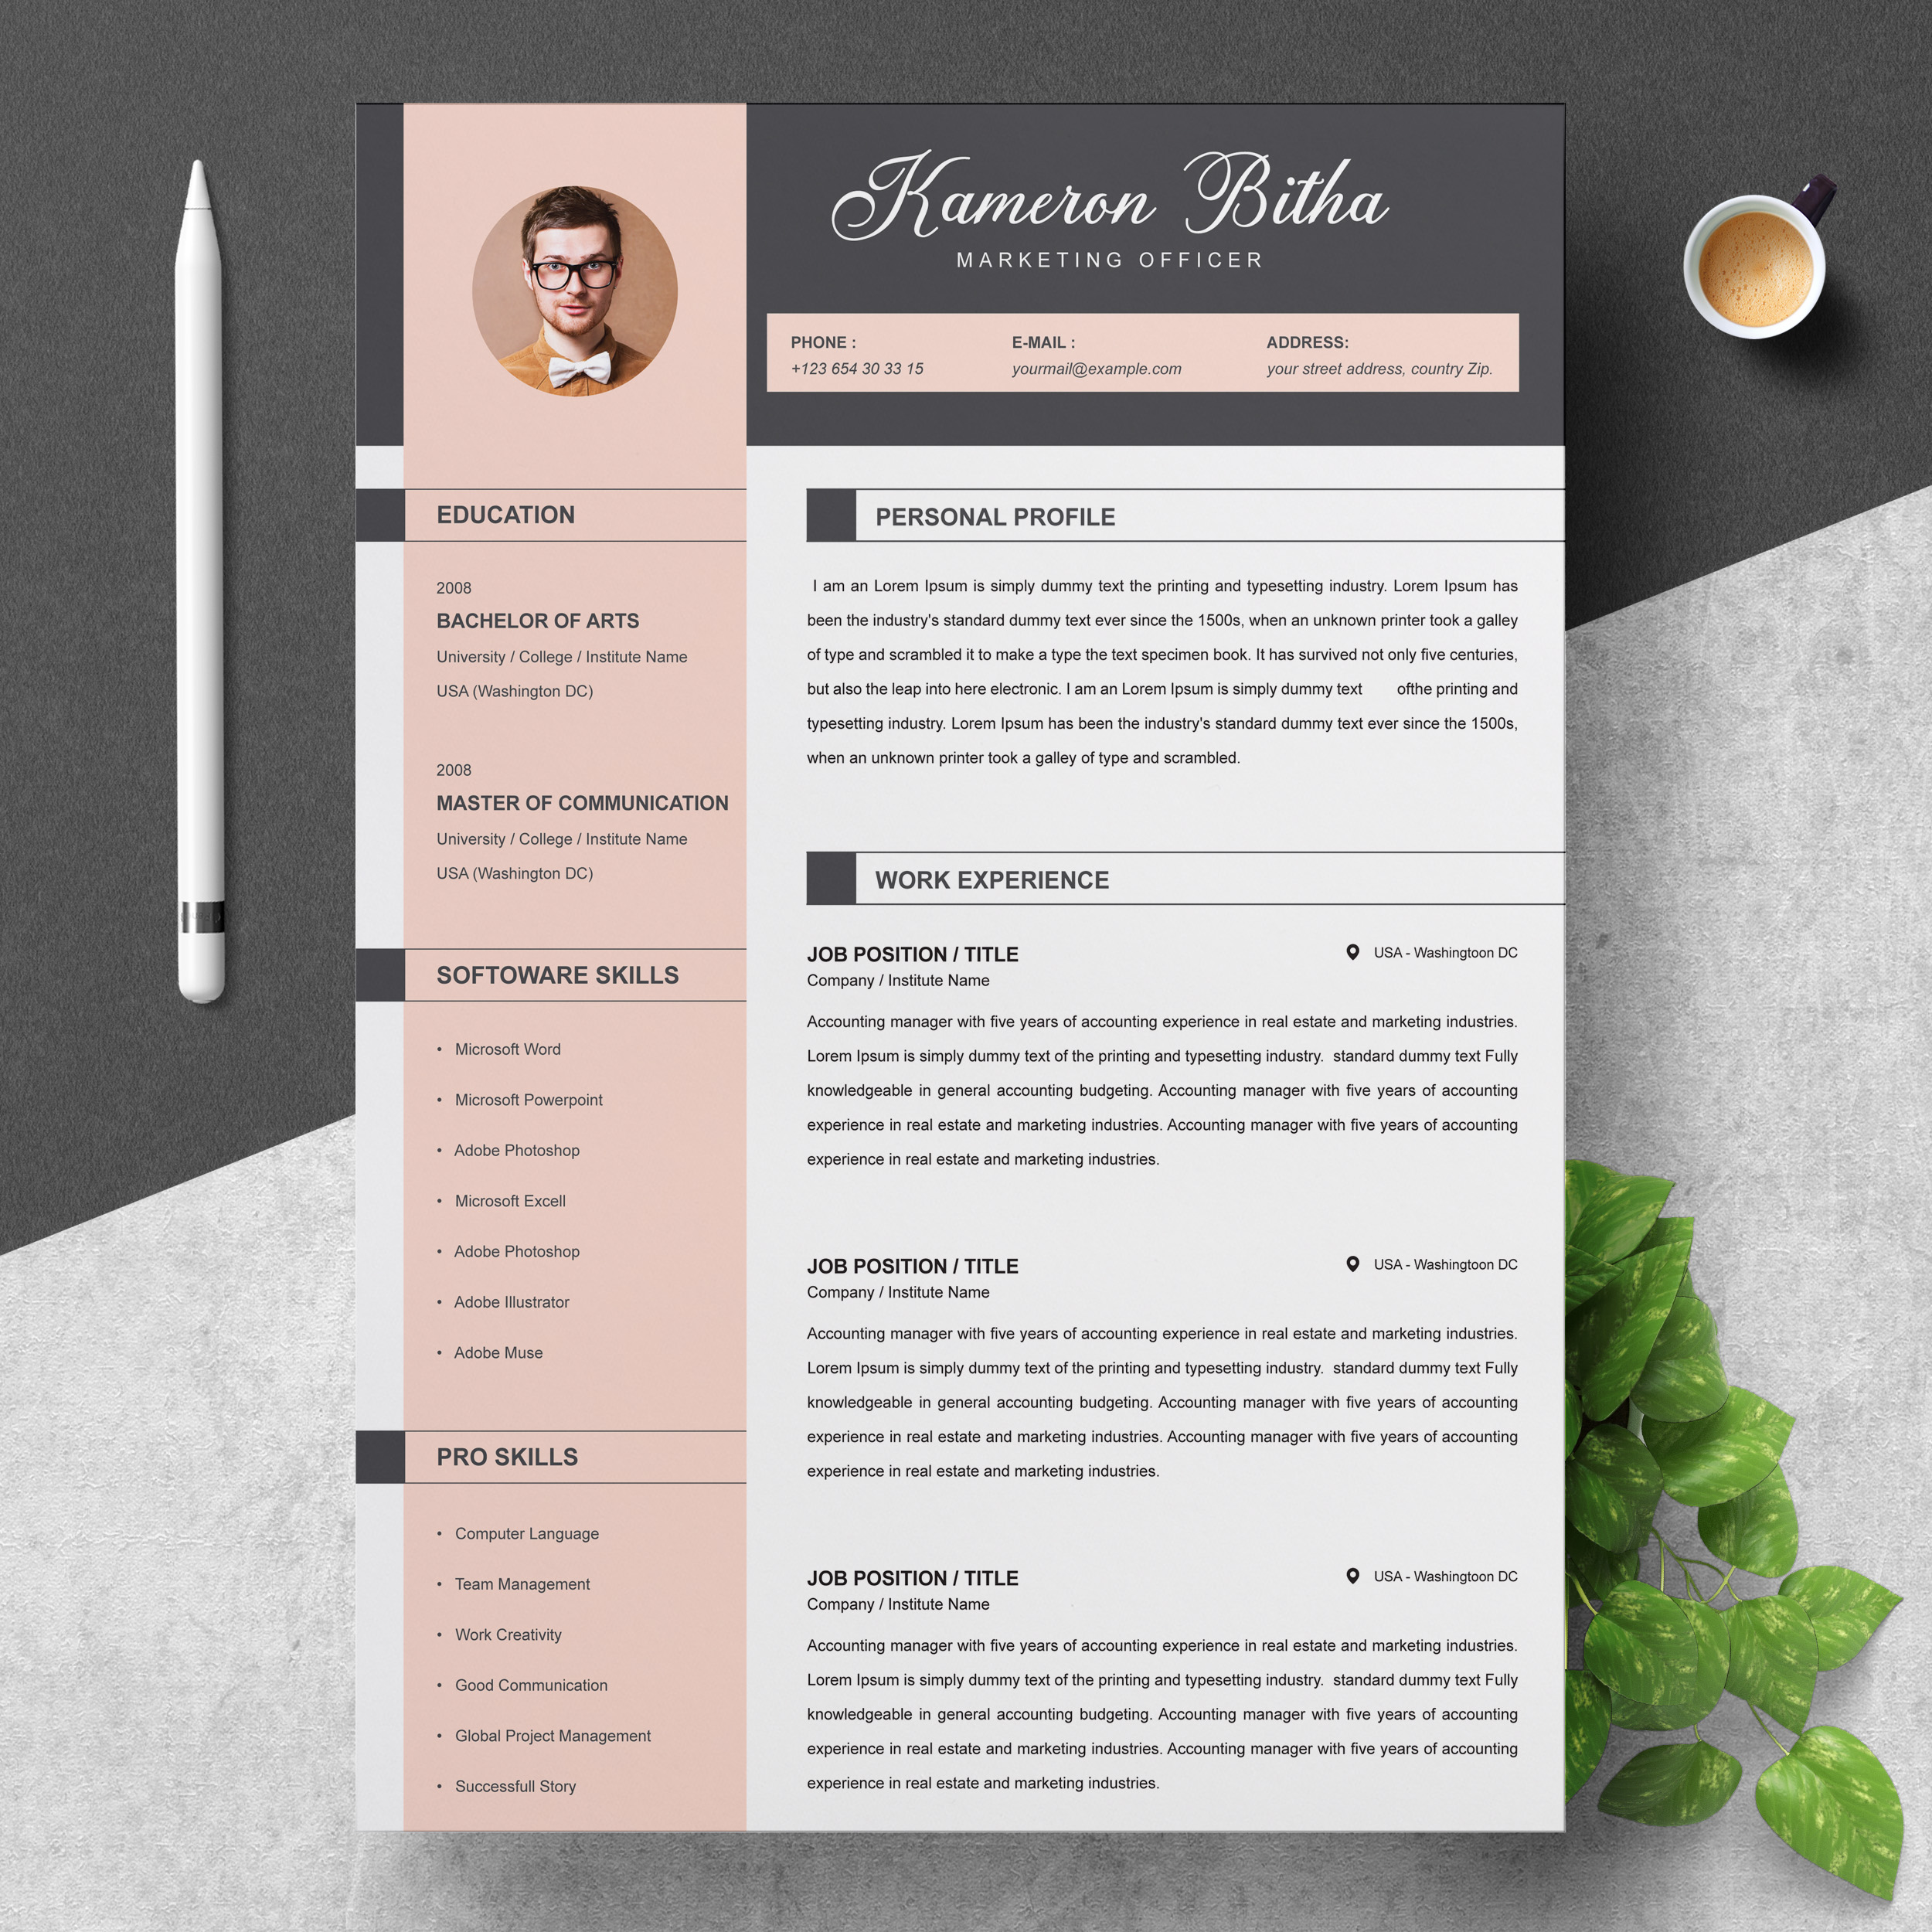 Marketing Officer Resume Template